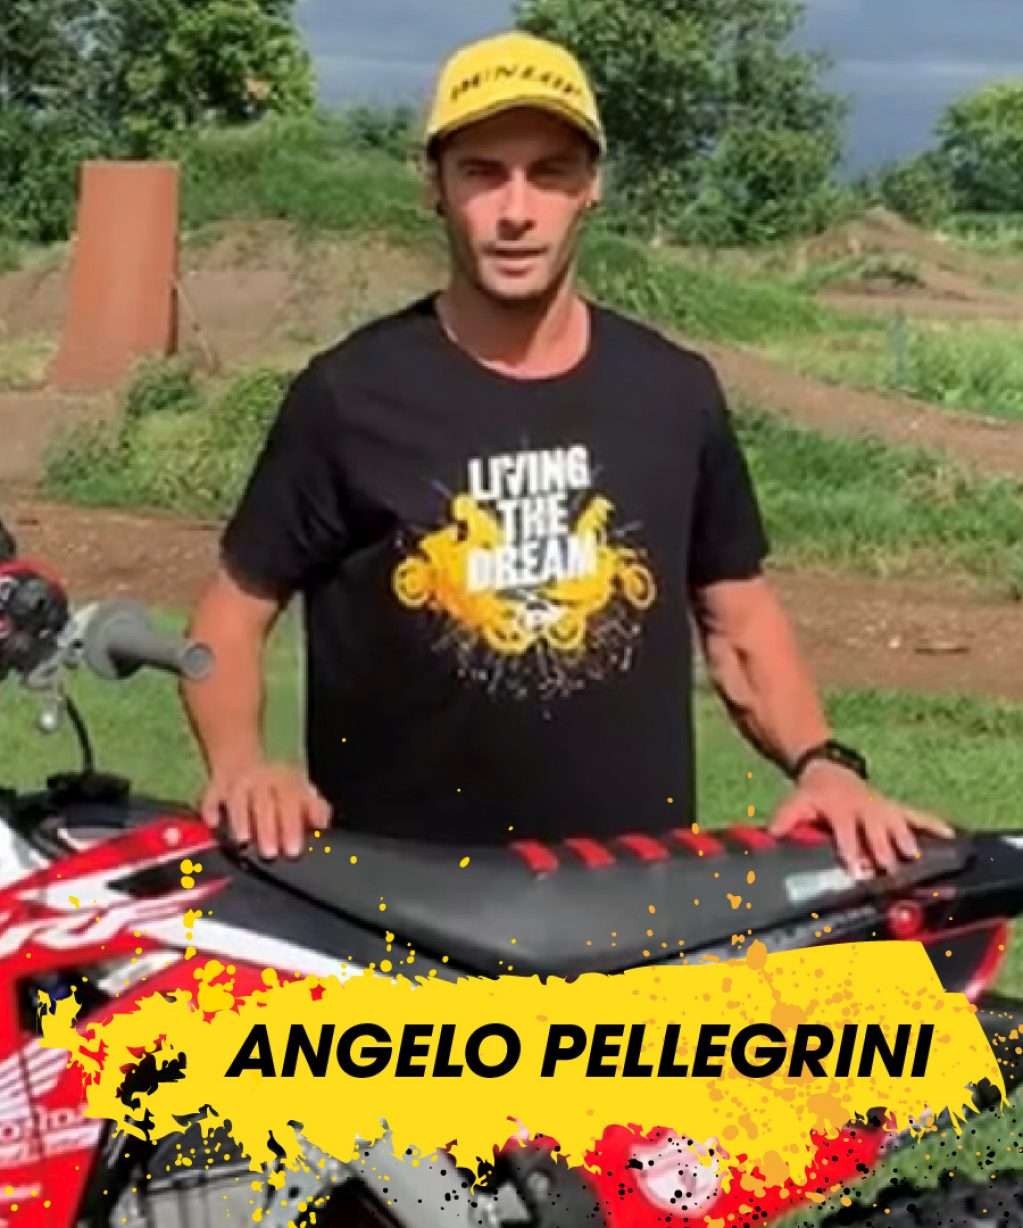 Angelo Pellegrini nosi Dunlopovo majico Living the Dream